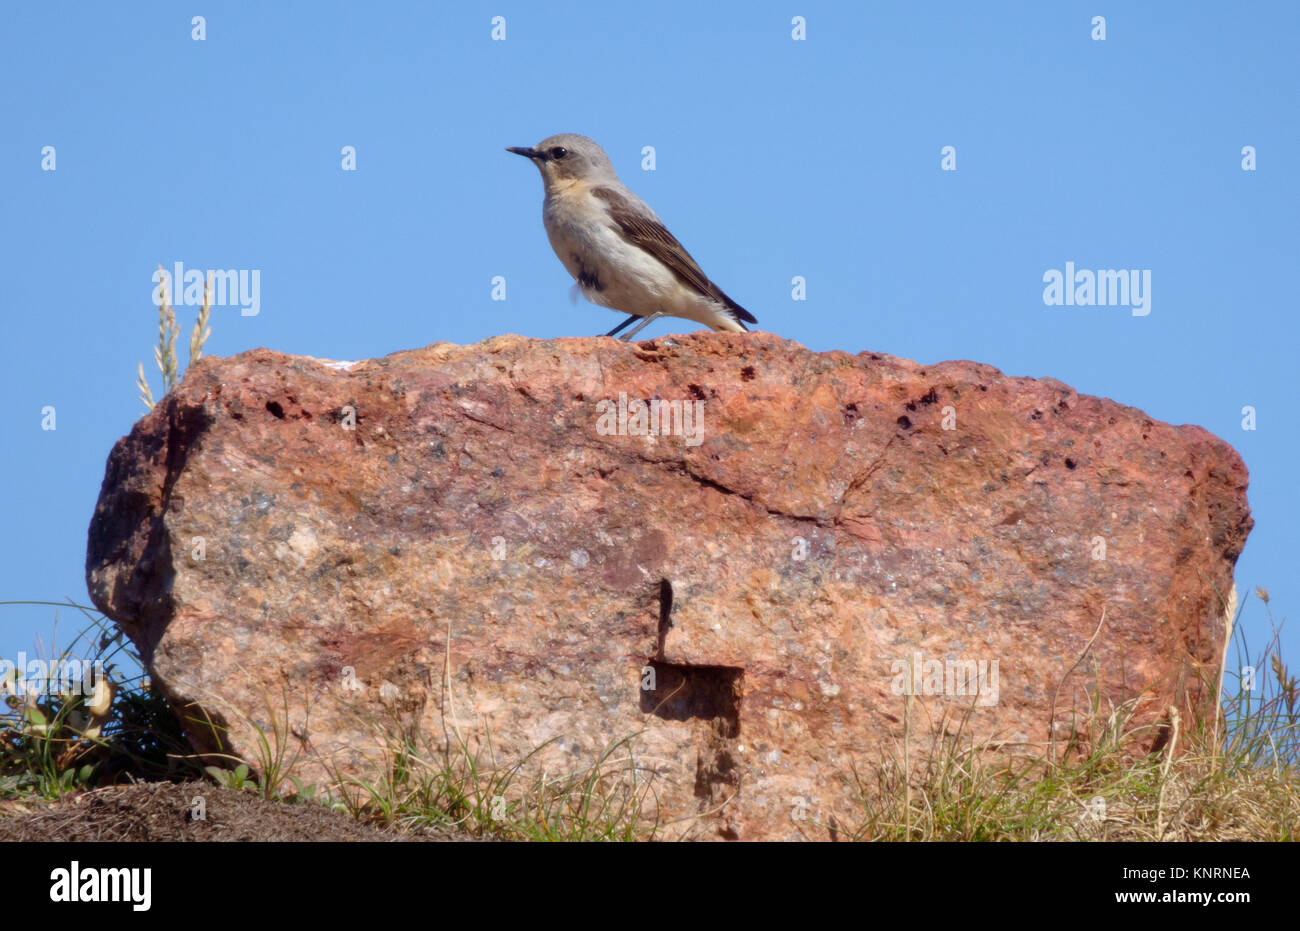 Female Northern Wheatear ( Oenanthe oenanthe ) in Spring Plummage, UK Stock Photo